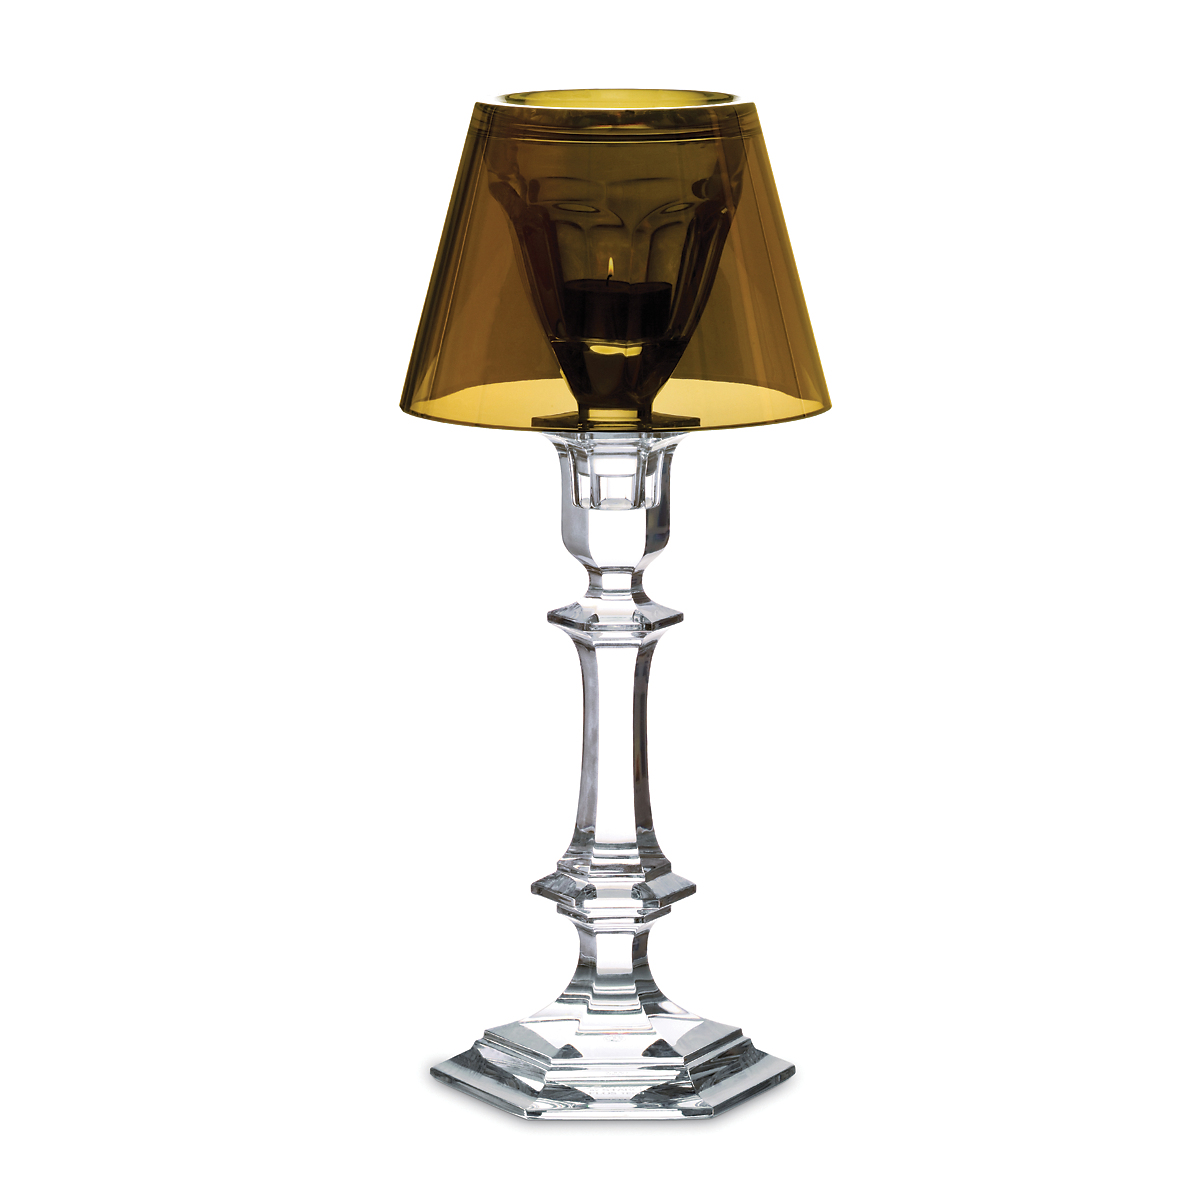 "Baccarat Harcourt ""Our Fire"" Candlestick with Gold Shade"